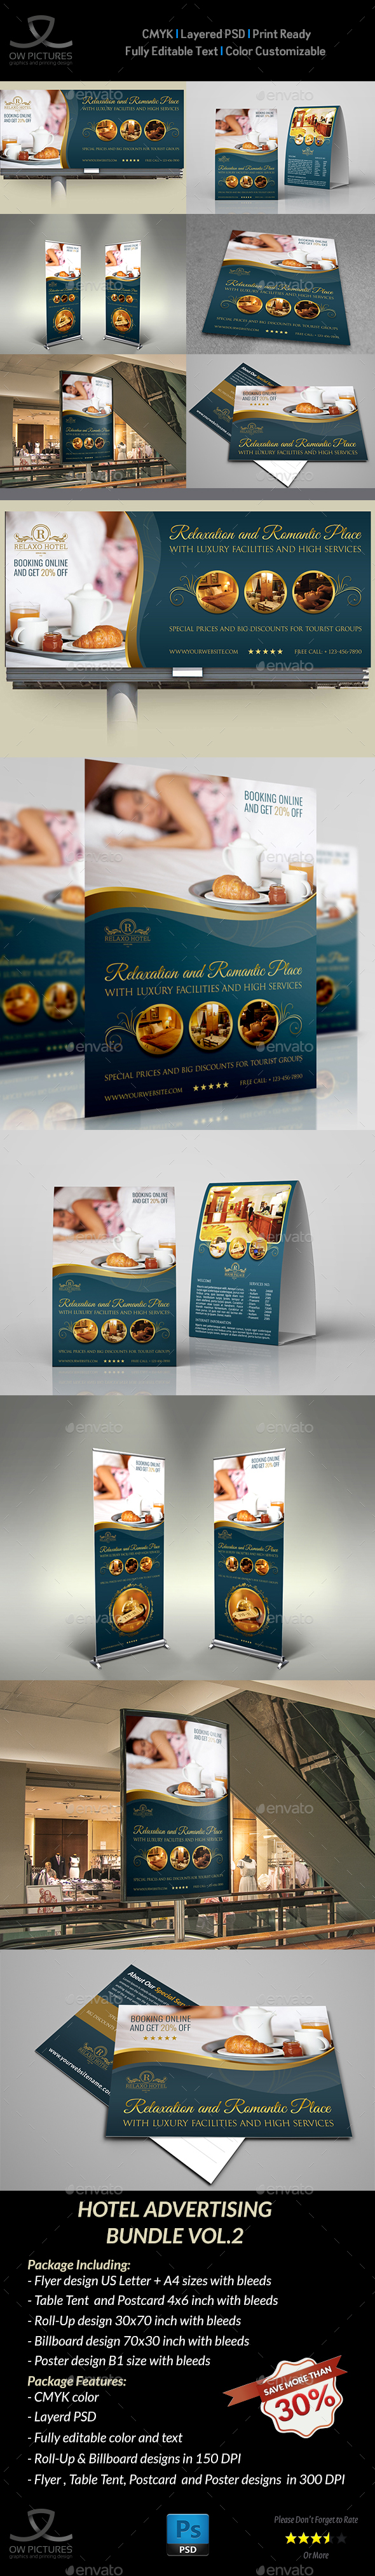 Hotel Advertising Bundle Vol.2 - Signage Print Templates